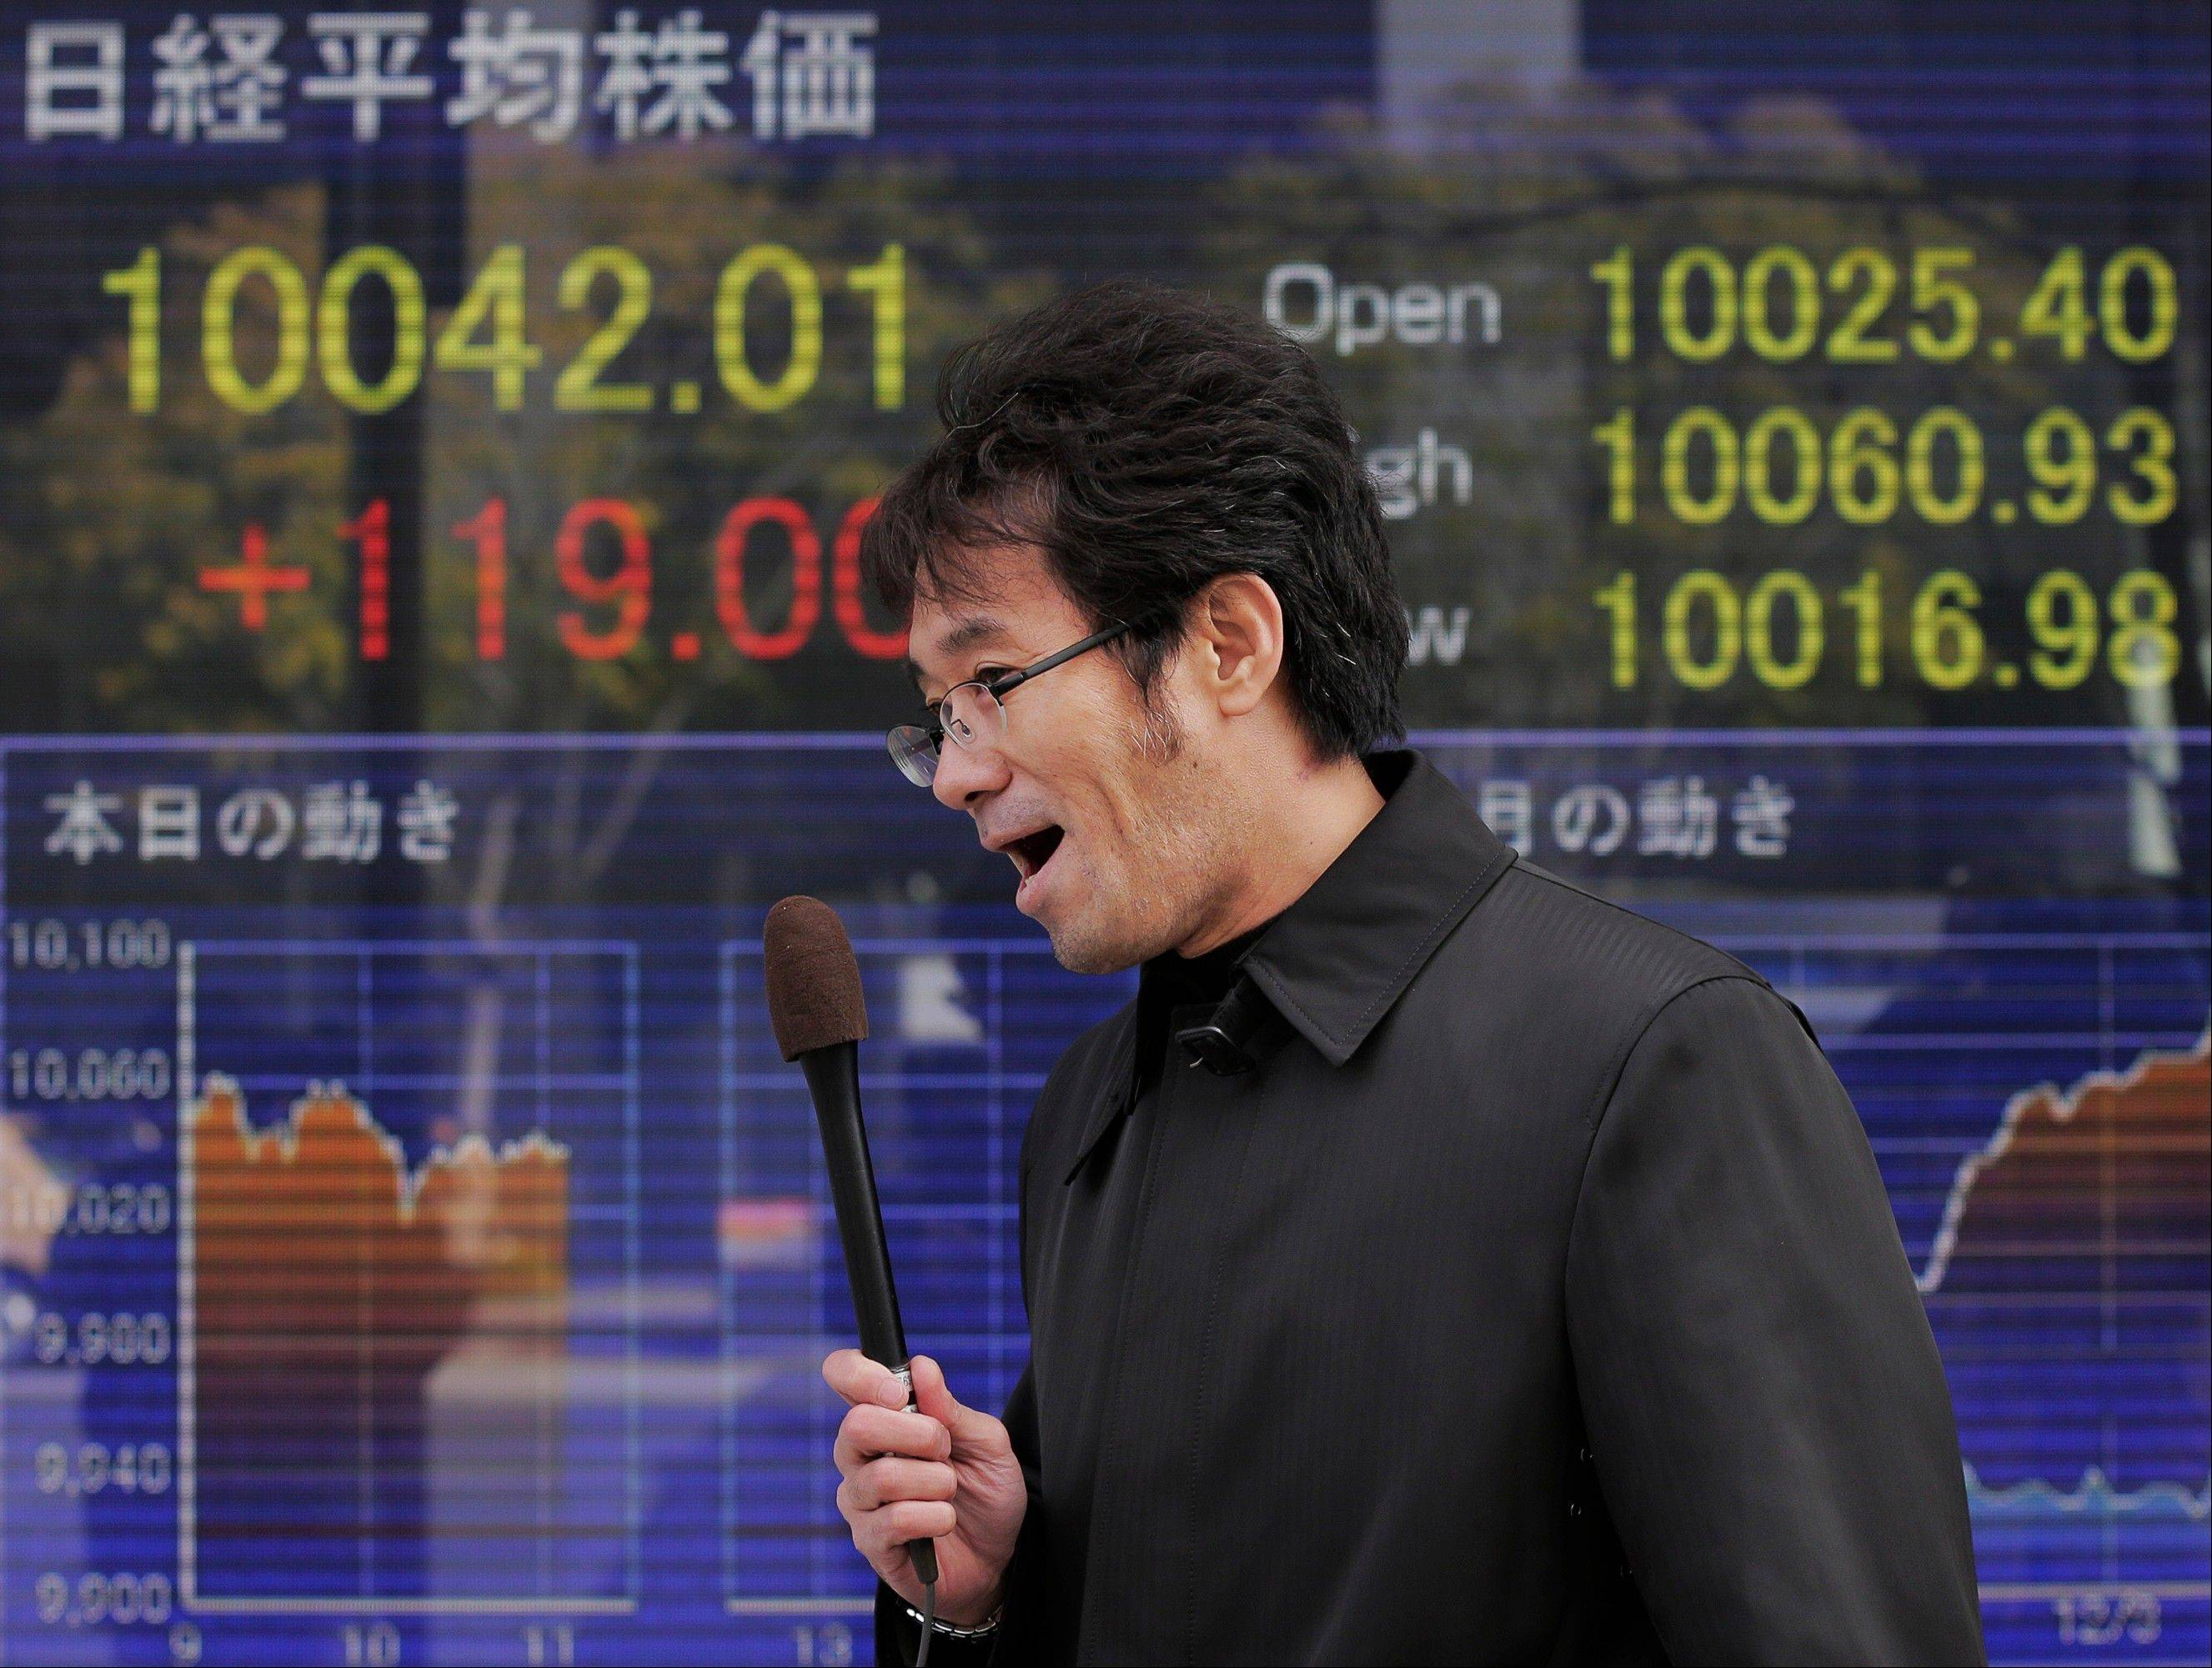 A TV journalist reports in front the electronic stock board of a securities firm showing Japan�s Nikkei 225 index that rose 119.00 points to 10,042.01 in Tokyo Wednesday morning.